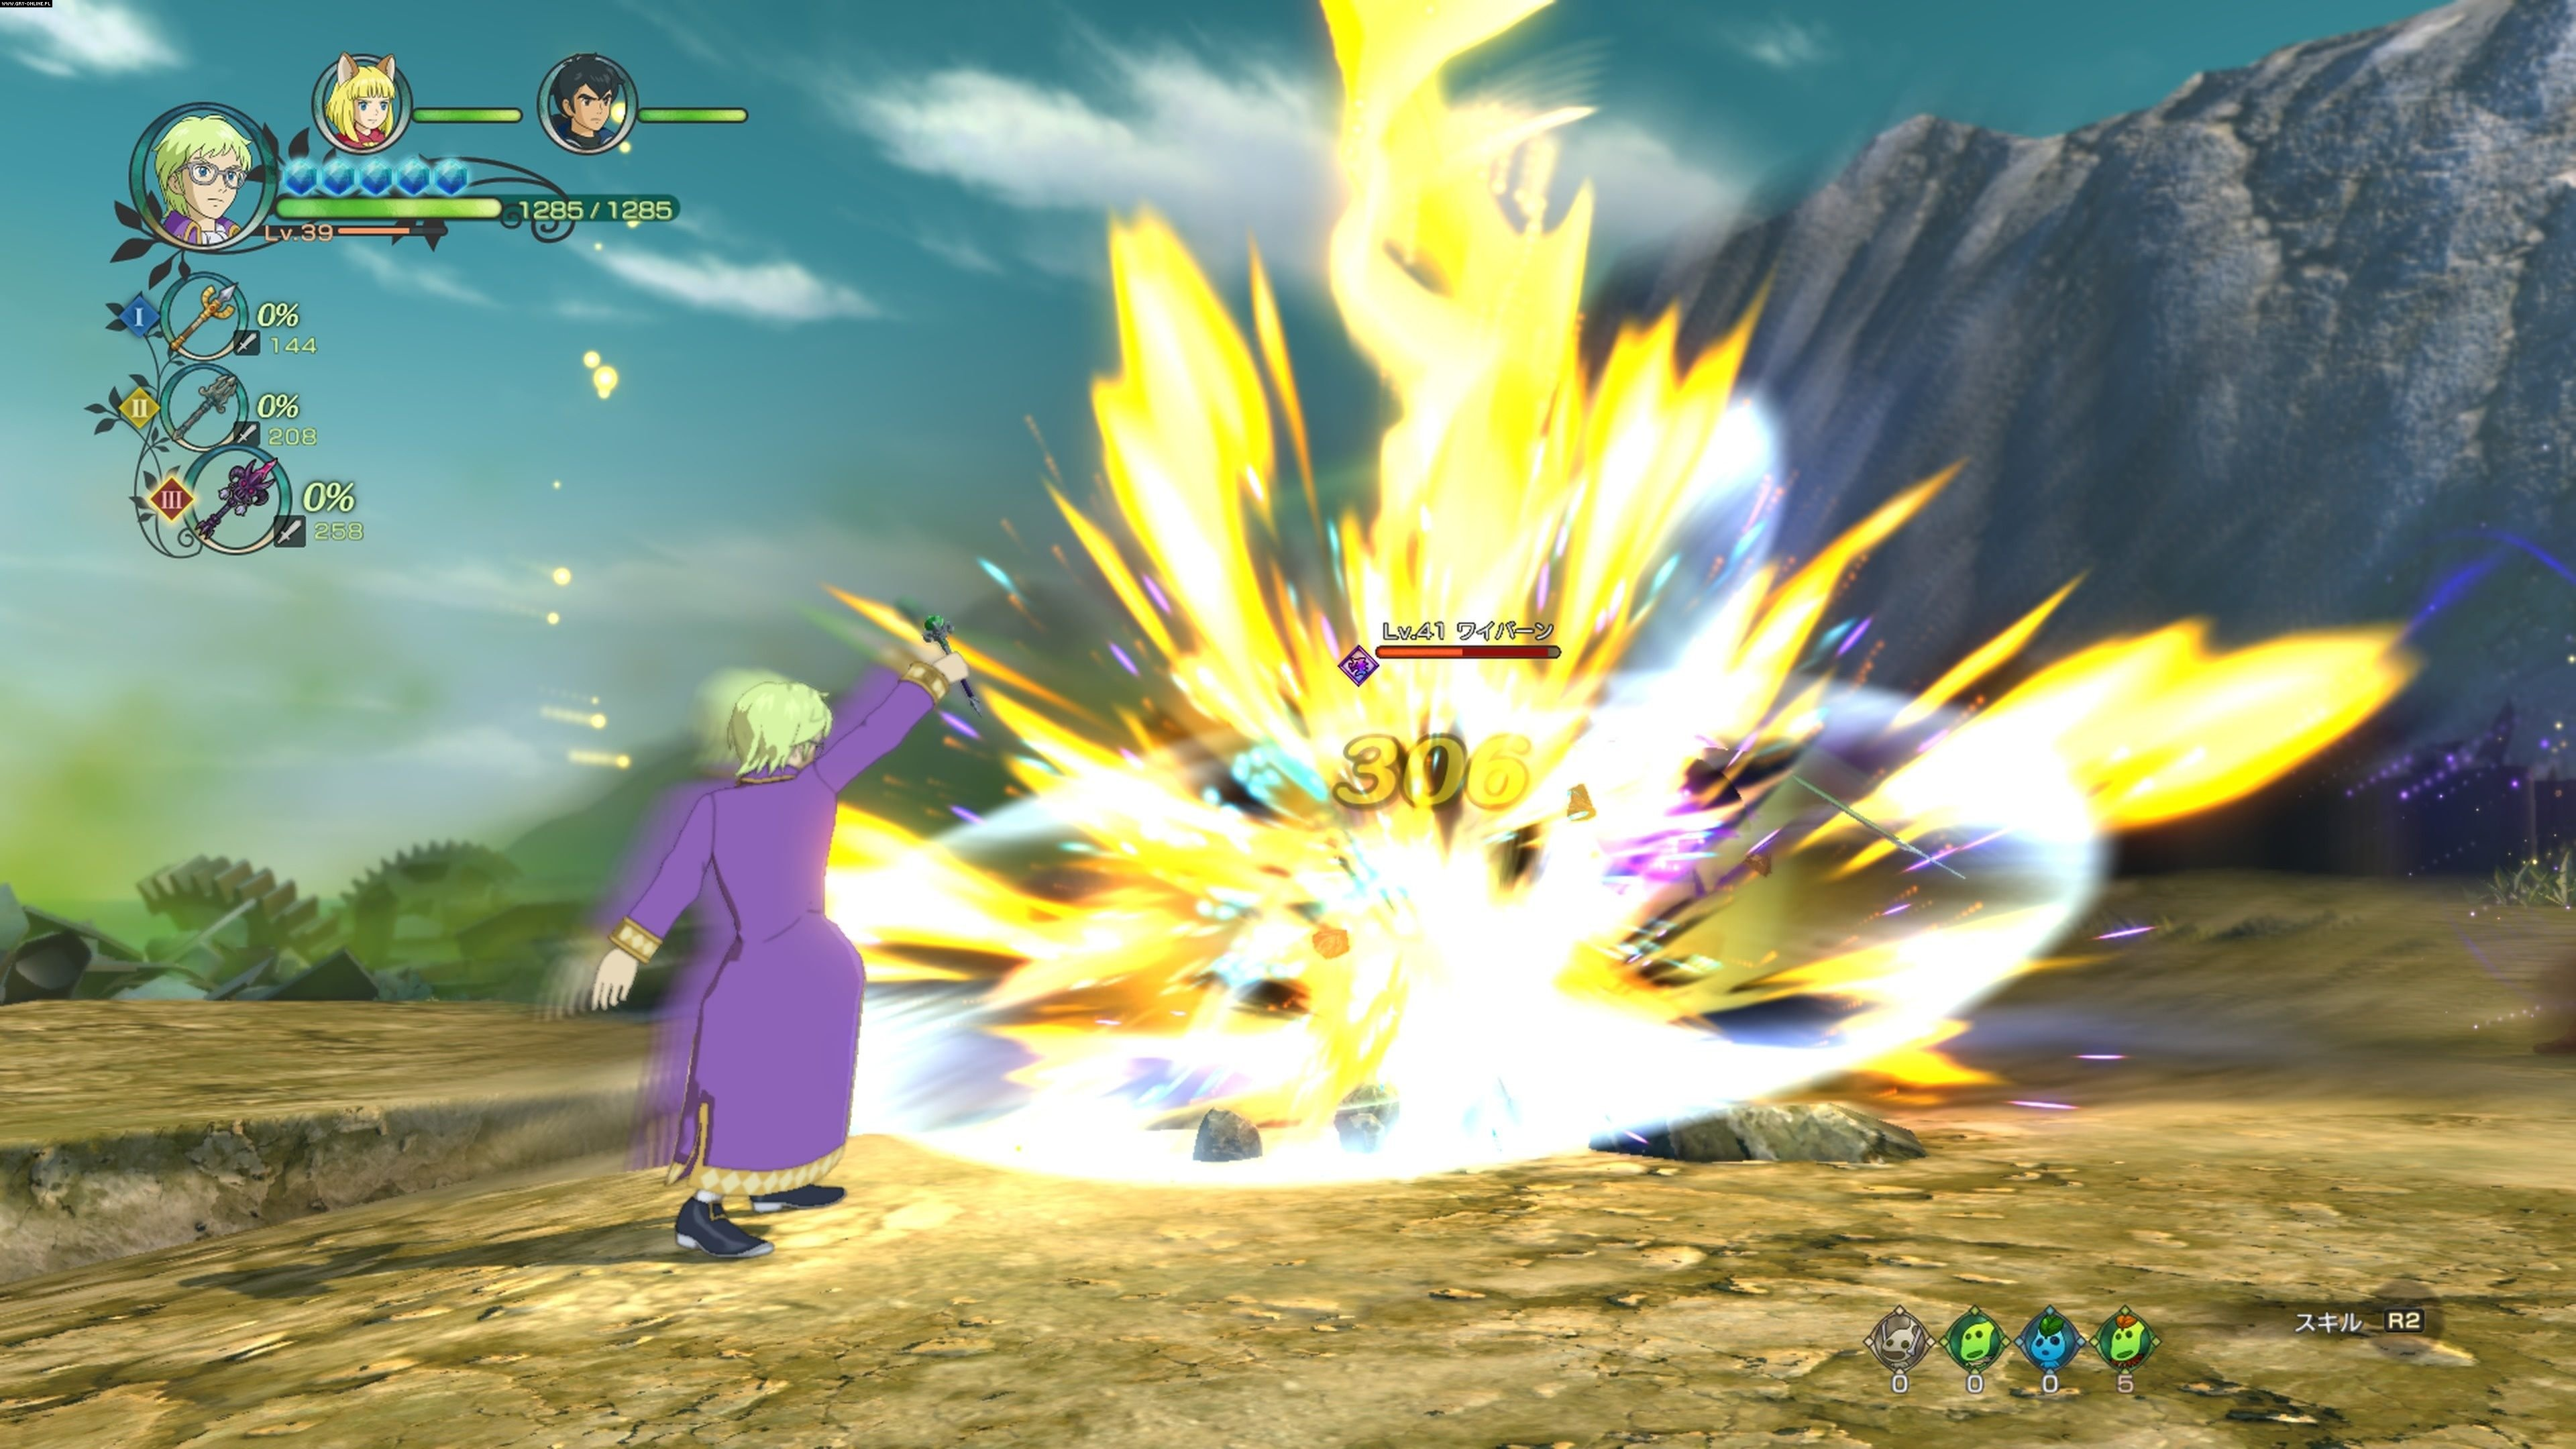 Ni no Kuni II: Revenant Kingdom PC, PS4 Gry Screen 21/112, Level 5, Bandai Namco Entertainment